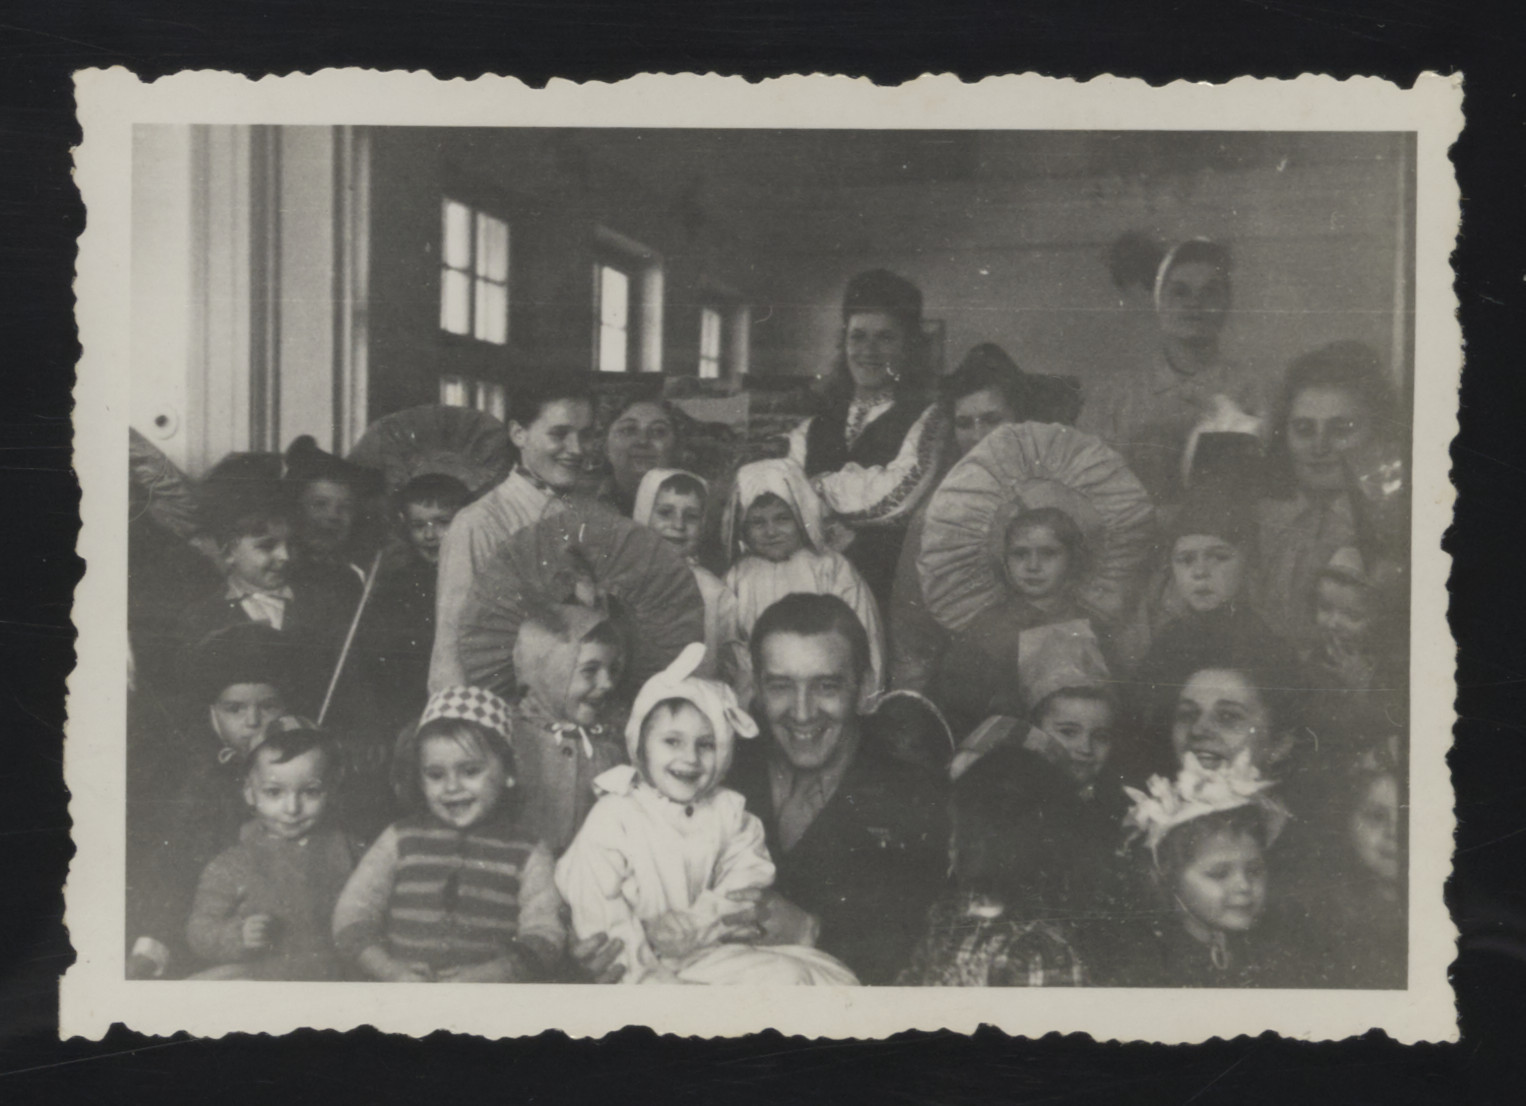 UNRRA director William Buckhantz meets with young children at a Purim celebration in the Deggendorf displaced persons camp.